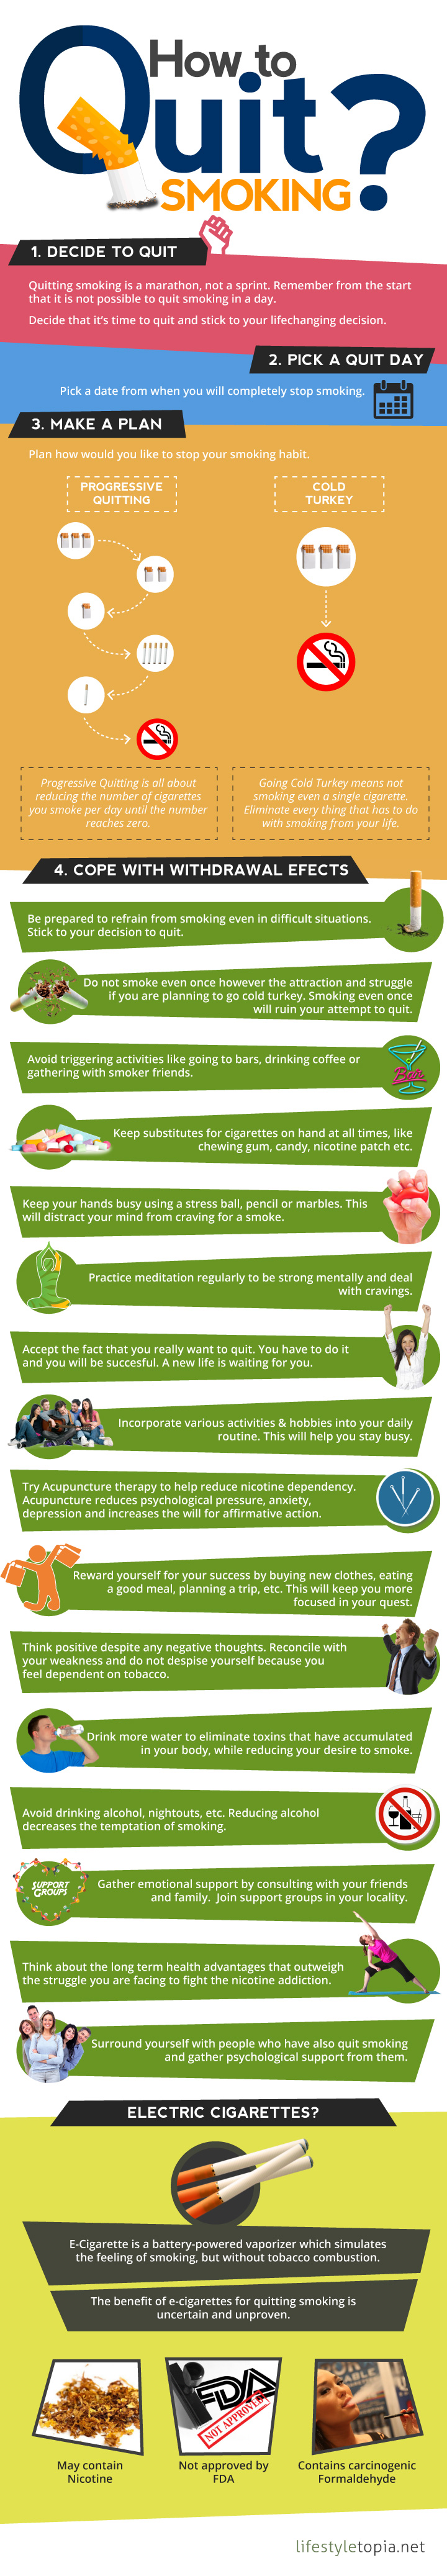 How to Quit Smoking smoking,tobacco,quit,tips,cigarette,infographic